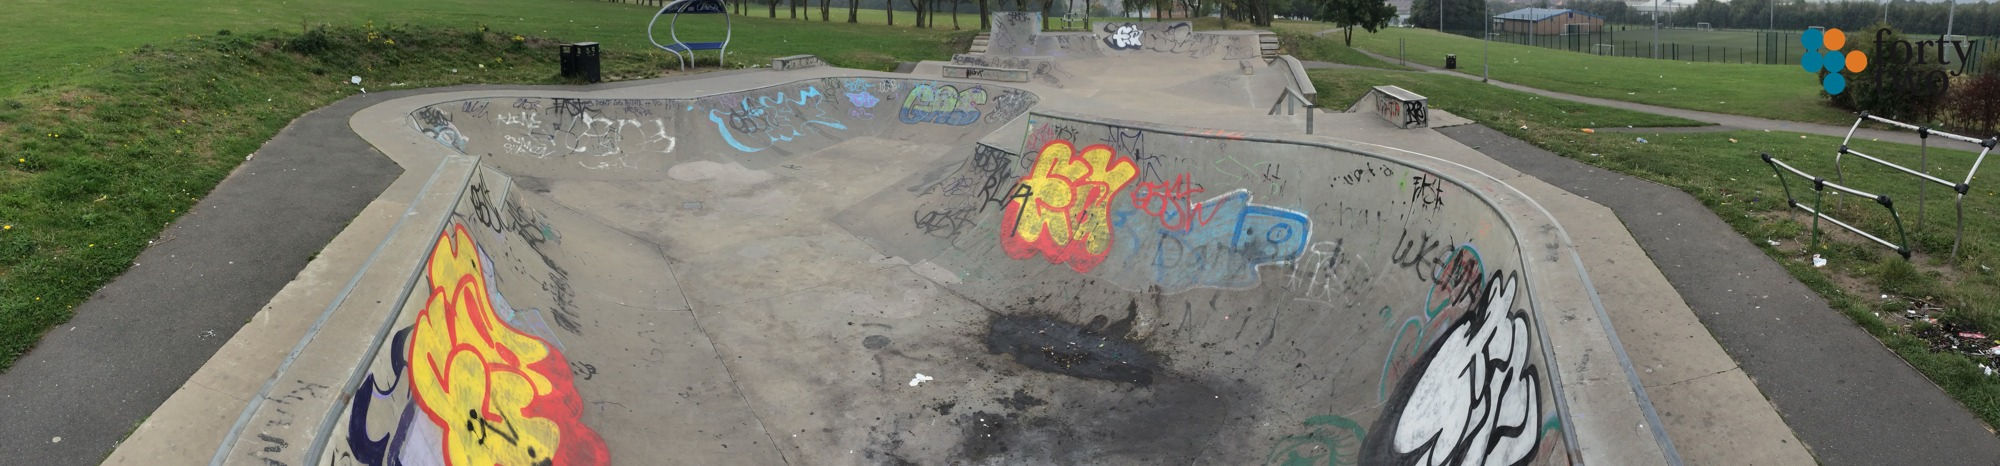 Panoramic view of Southglade skatepark Nottingham showing the bowl section.